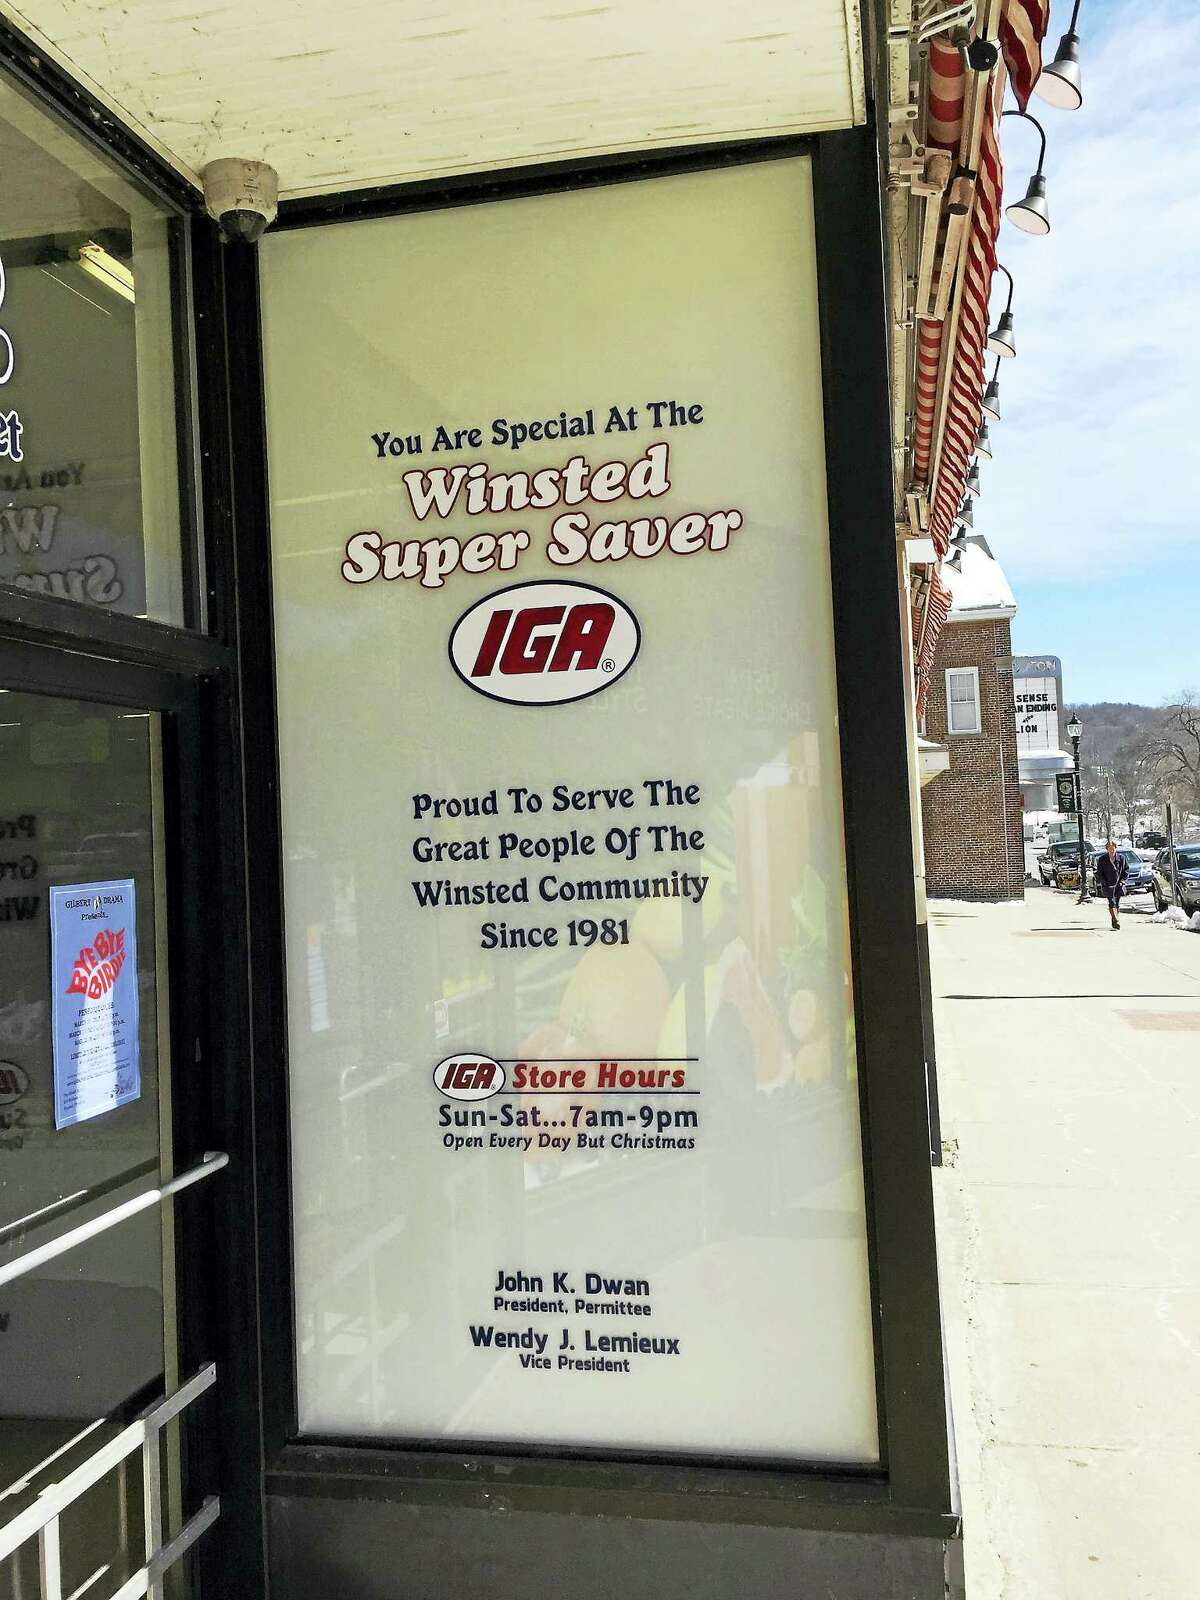 The IGA Winsted Super Saver on Main Street has been in business for decades.